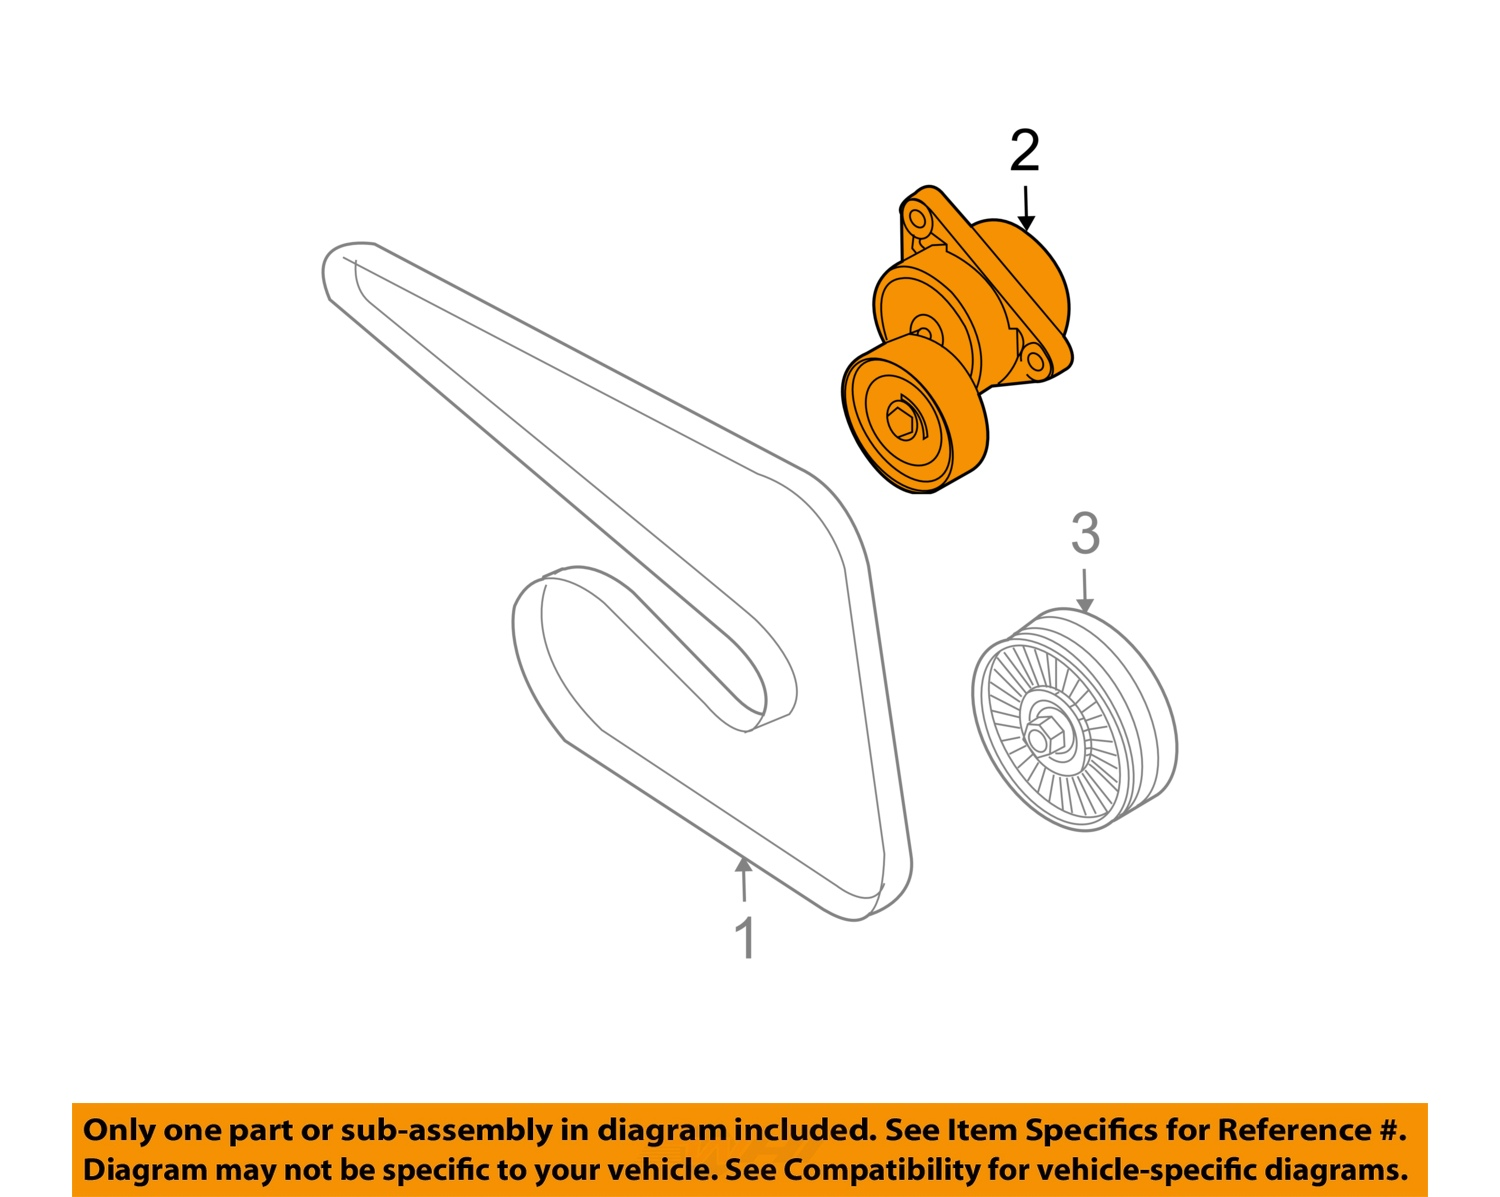 hight resolution of 08 chevy aveo belt diagram all kind of wiring diagrams u2022 chevy idler pulley noise